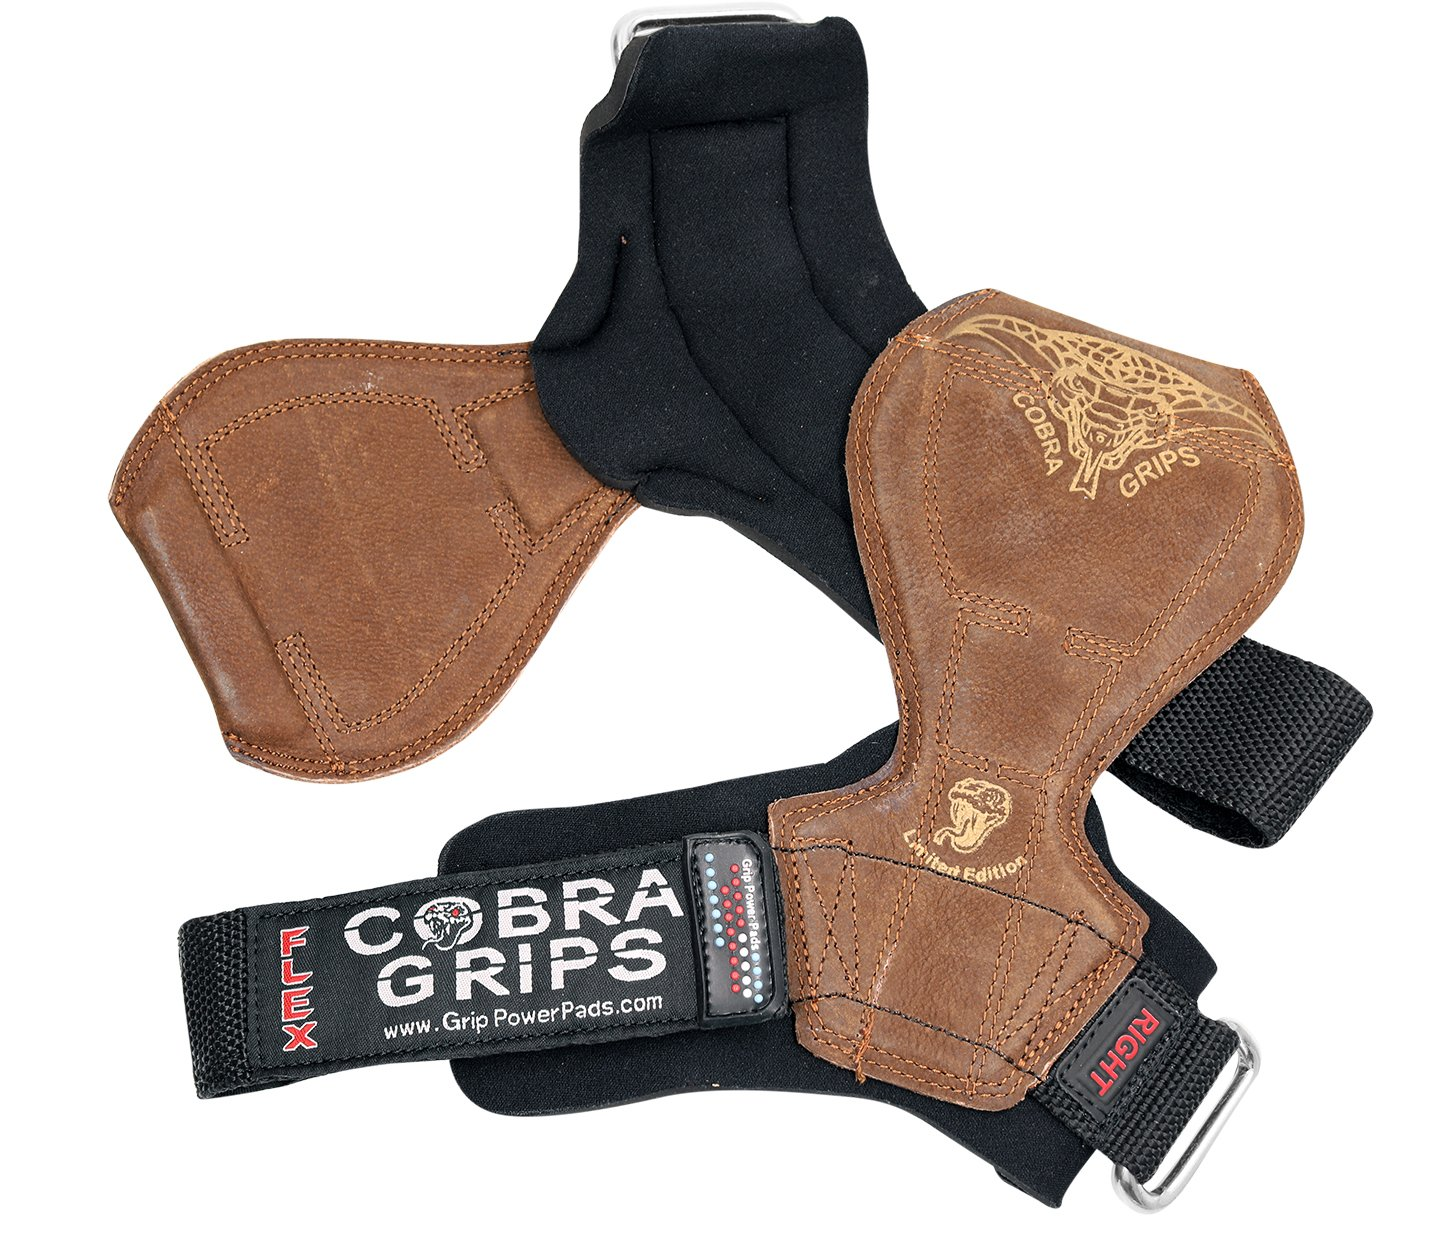 2018 Cobra Grips Flex Model Weight Lifting Gloves Heavy Duty Straps Alternative Power Lifting Hooks Best for Deadlifts with Padded Wrist Wrap Support Bodybuilding (Medium, Brown Leather) by Grip Power Pads (Image #5)